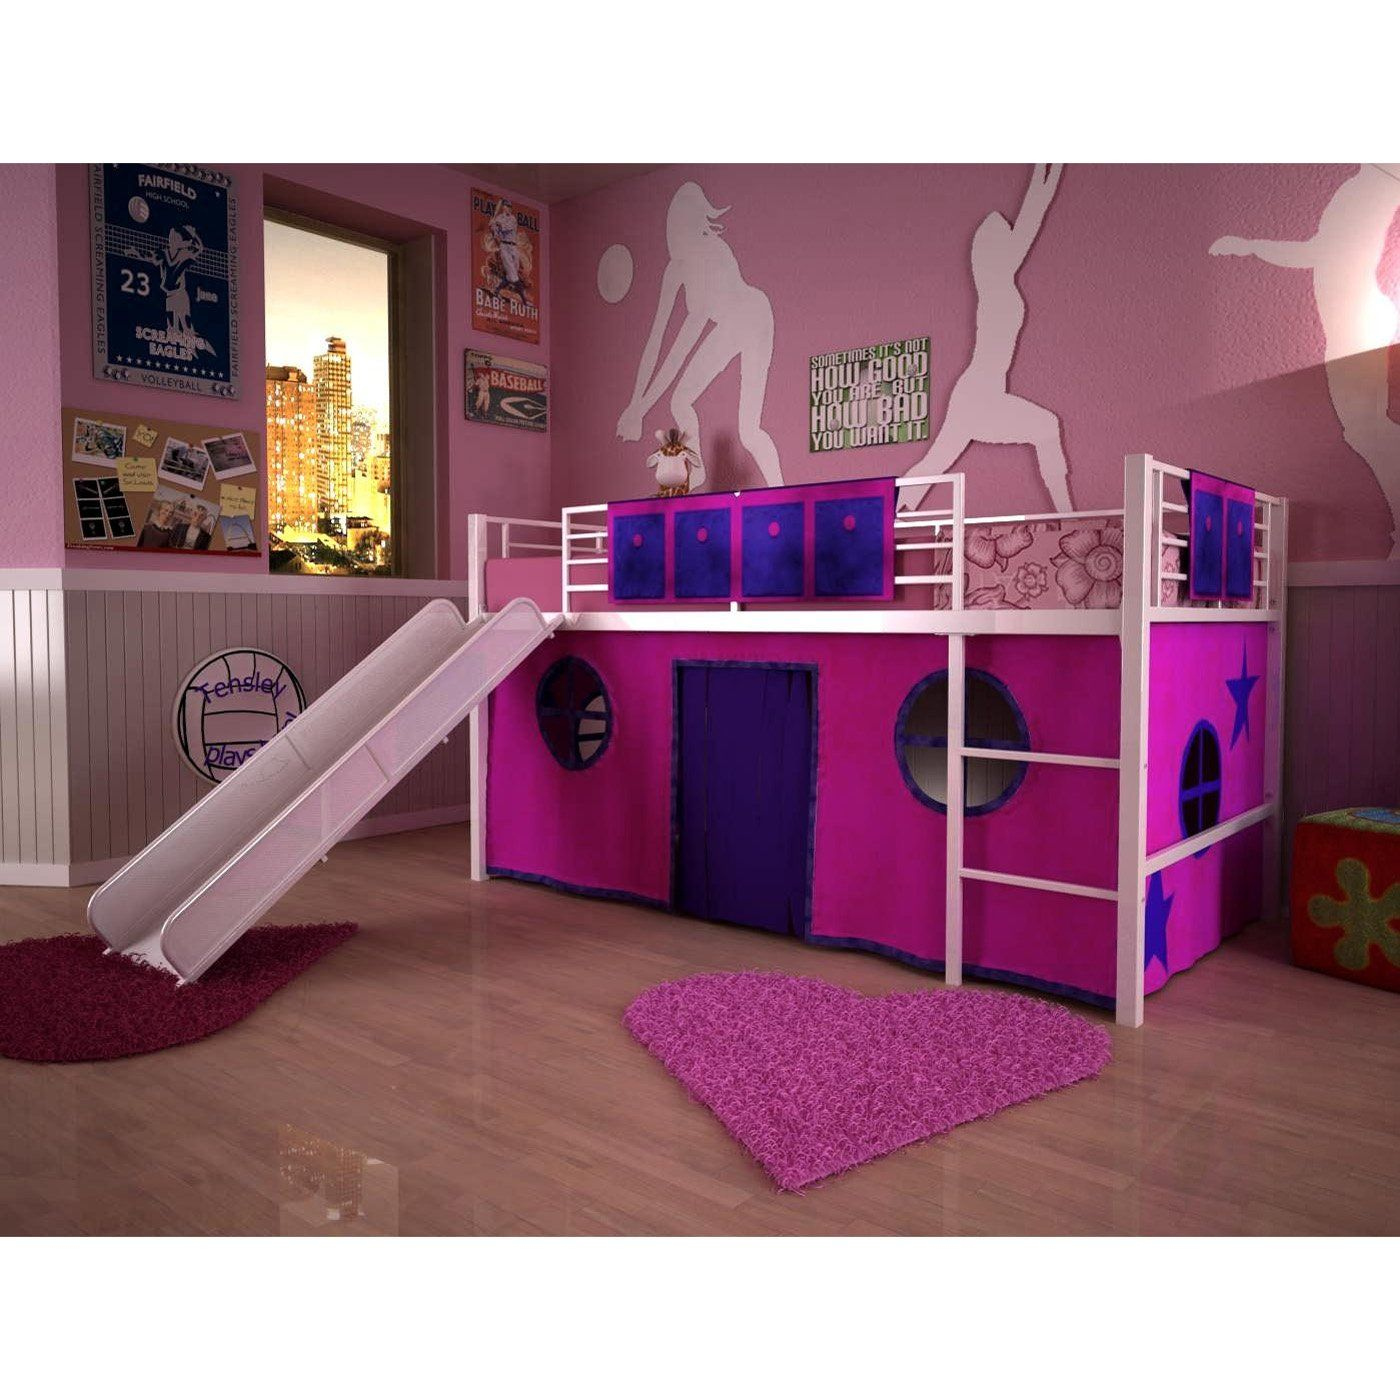 Bed For Teenage Girls girls loft beds for teens | berg furniture play and study loft bed